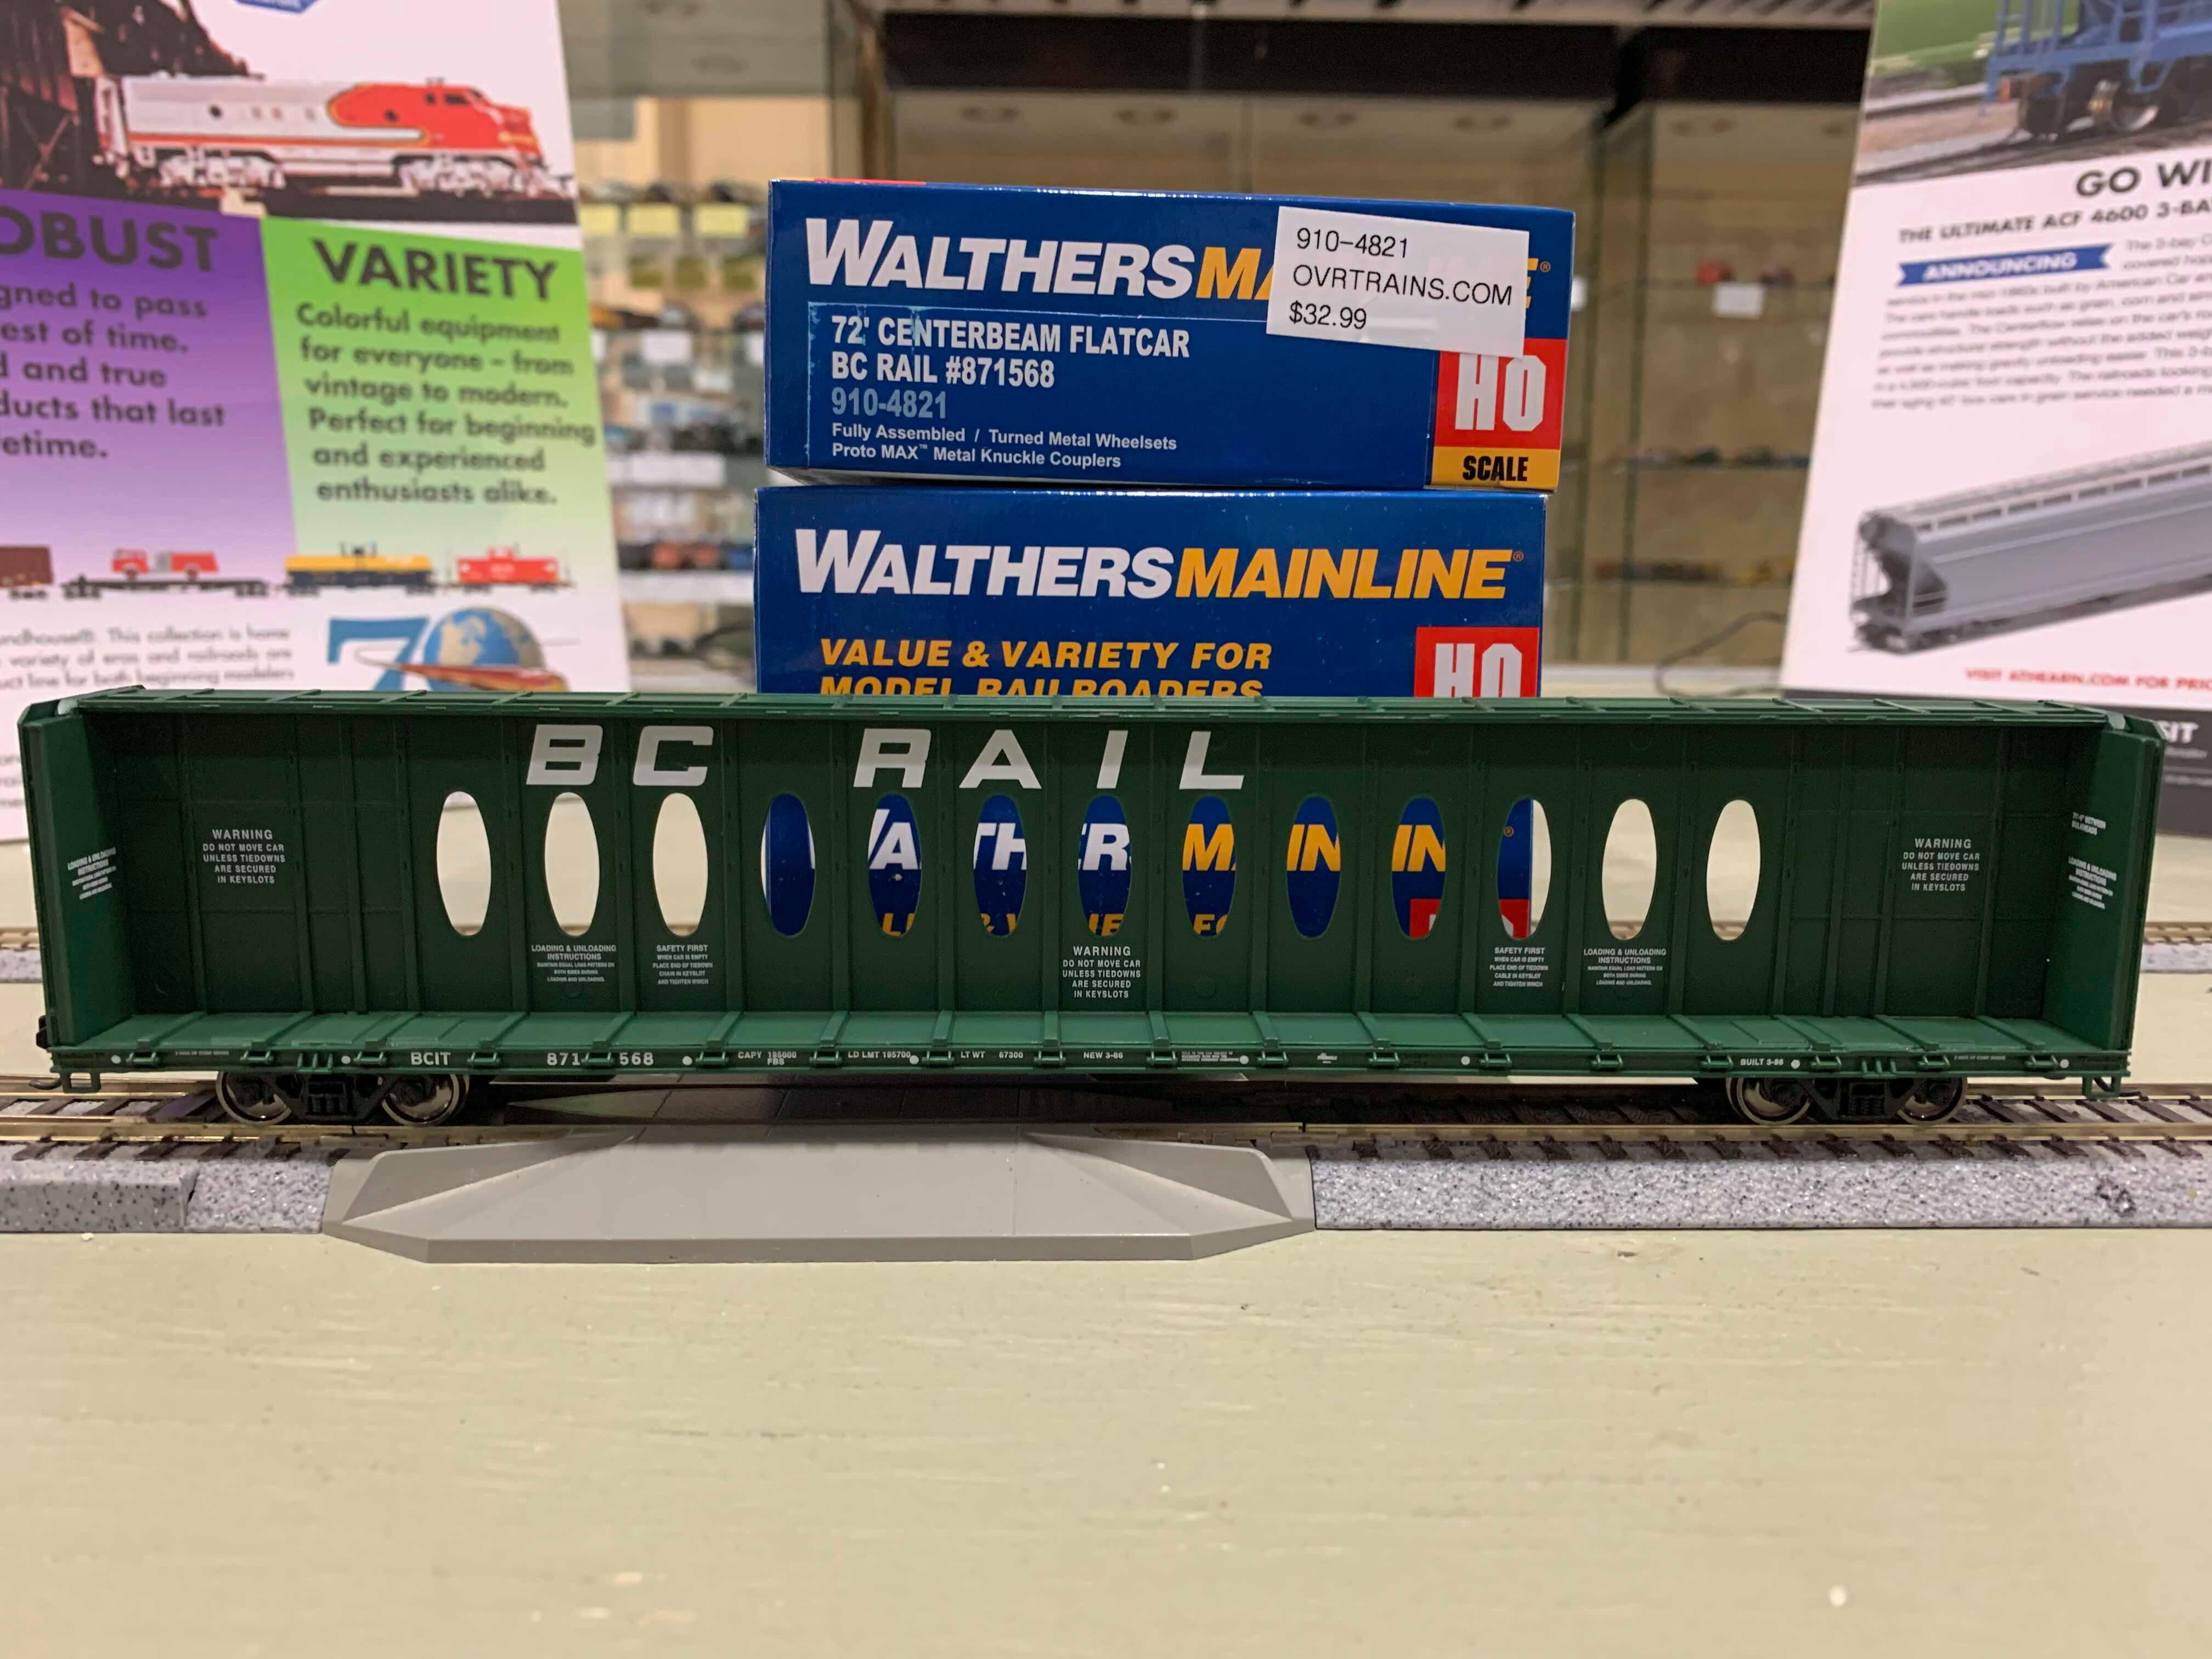 WalthersMainline 4819 HO - 72Ft Centerbeam Flatcar with Opera Windows - Ready to Run - BC Rail #871537